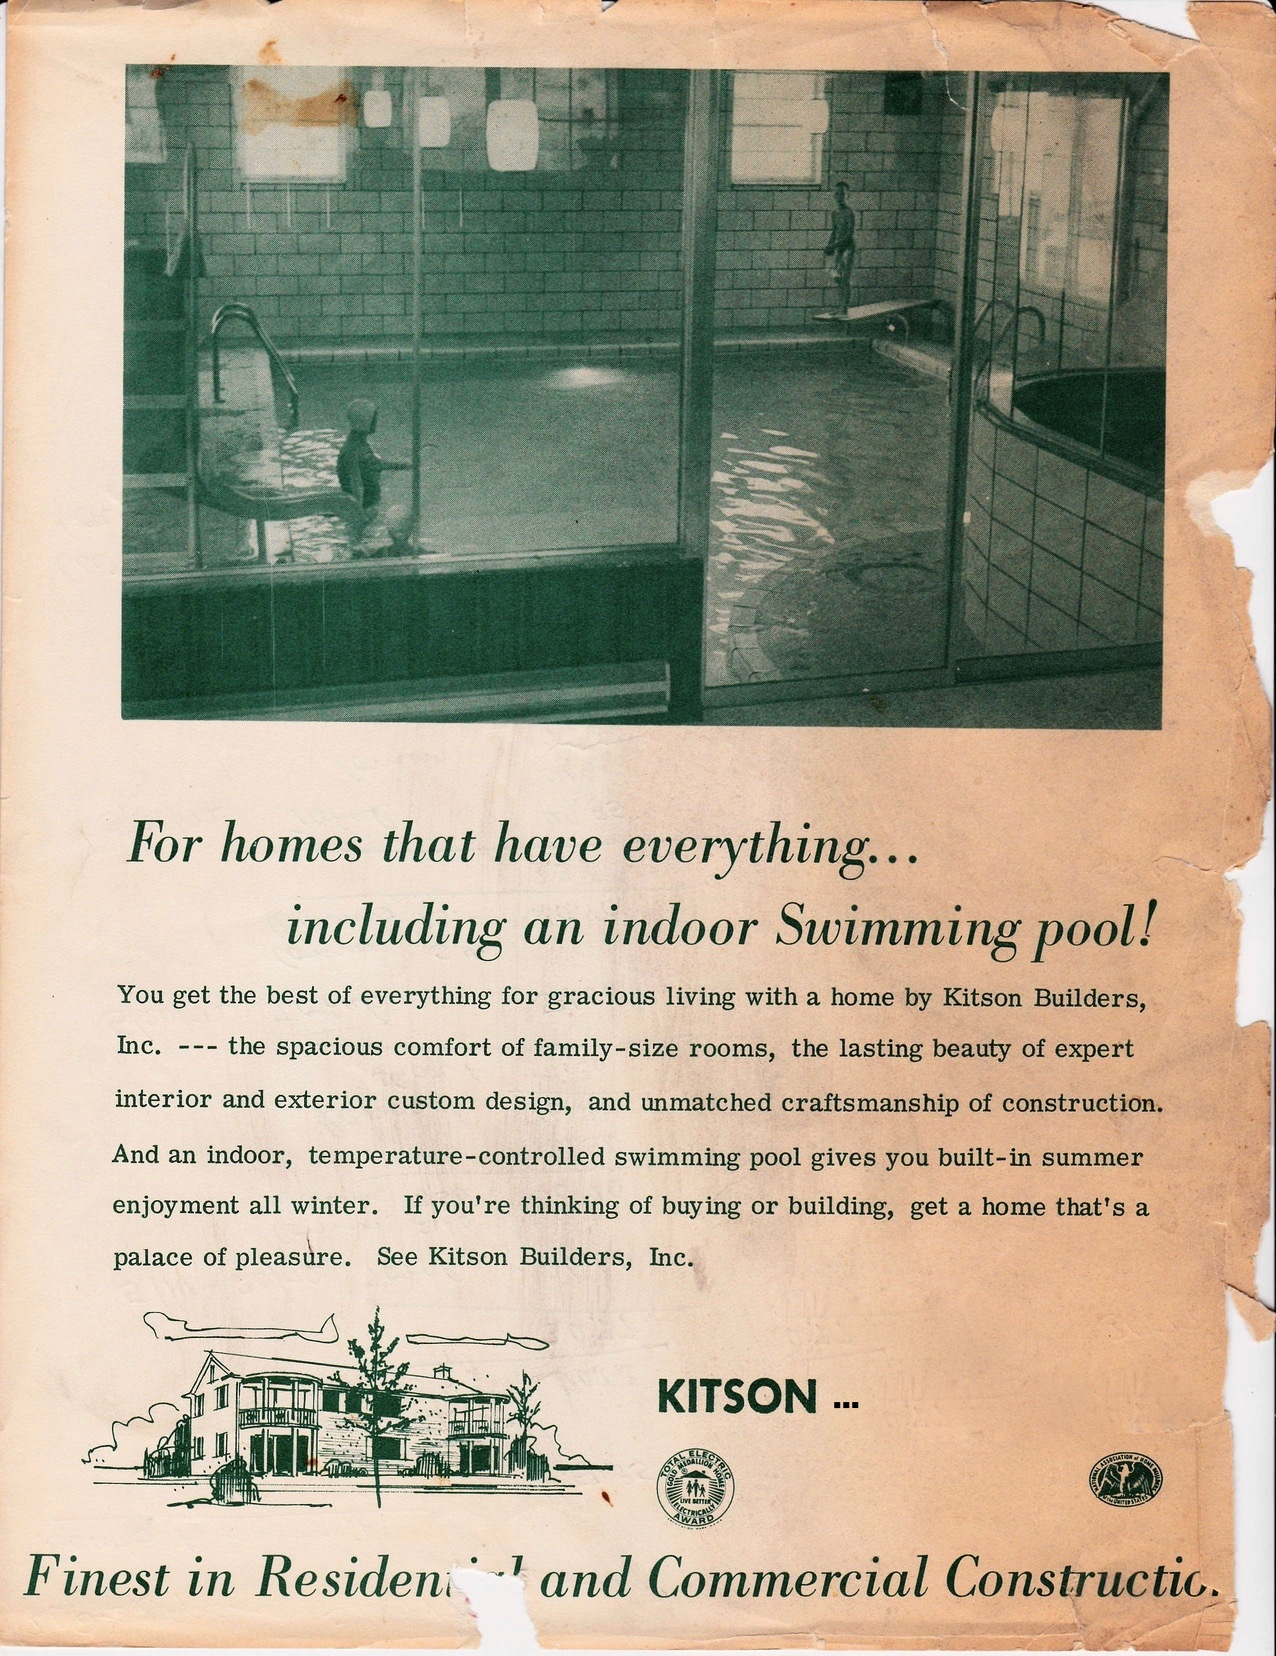 An original Kitson Builders advertisement from the mid-60's